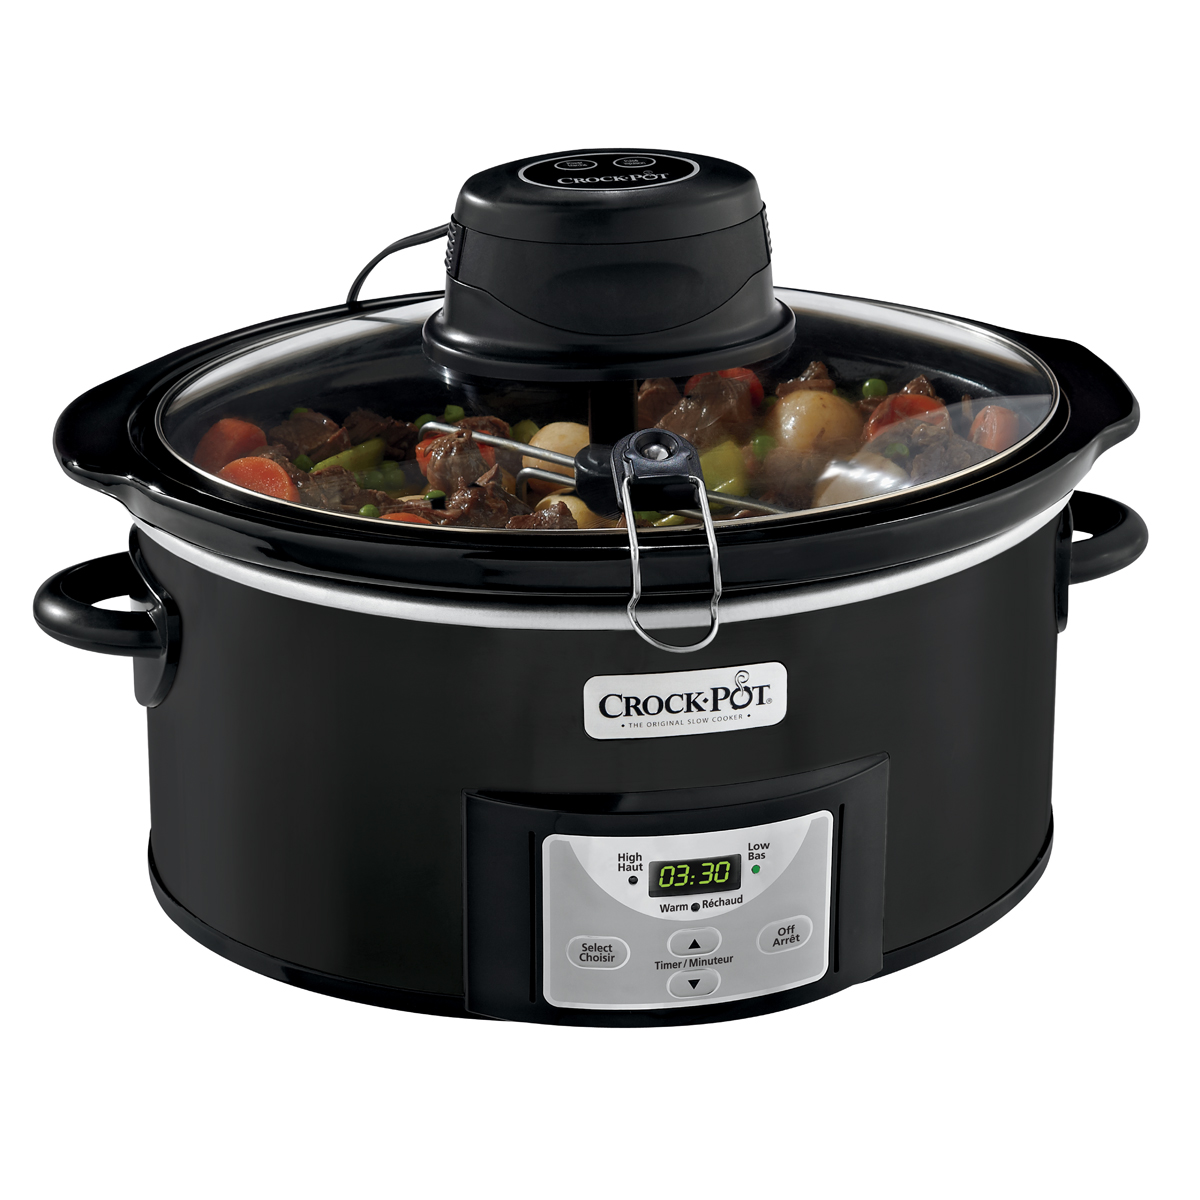 Tips for Converting an Oven Recipe for the Crock Pot. Reduce the Liquid: When converting a recipe from the original, I sometimes reduce the liquid because I know that my slow cookers seal in a lot more moisture than the dry-heat of the oven.